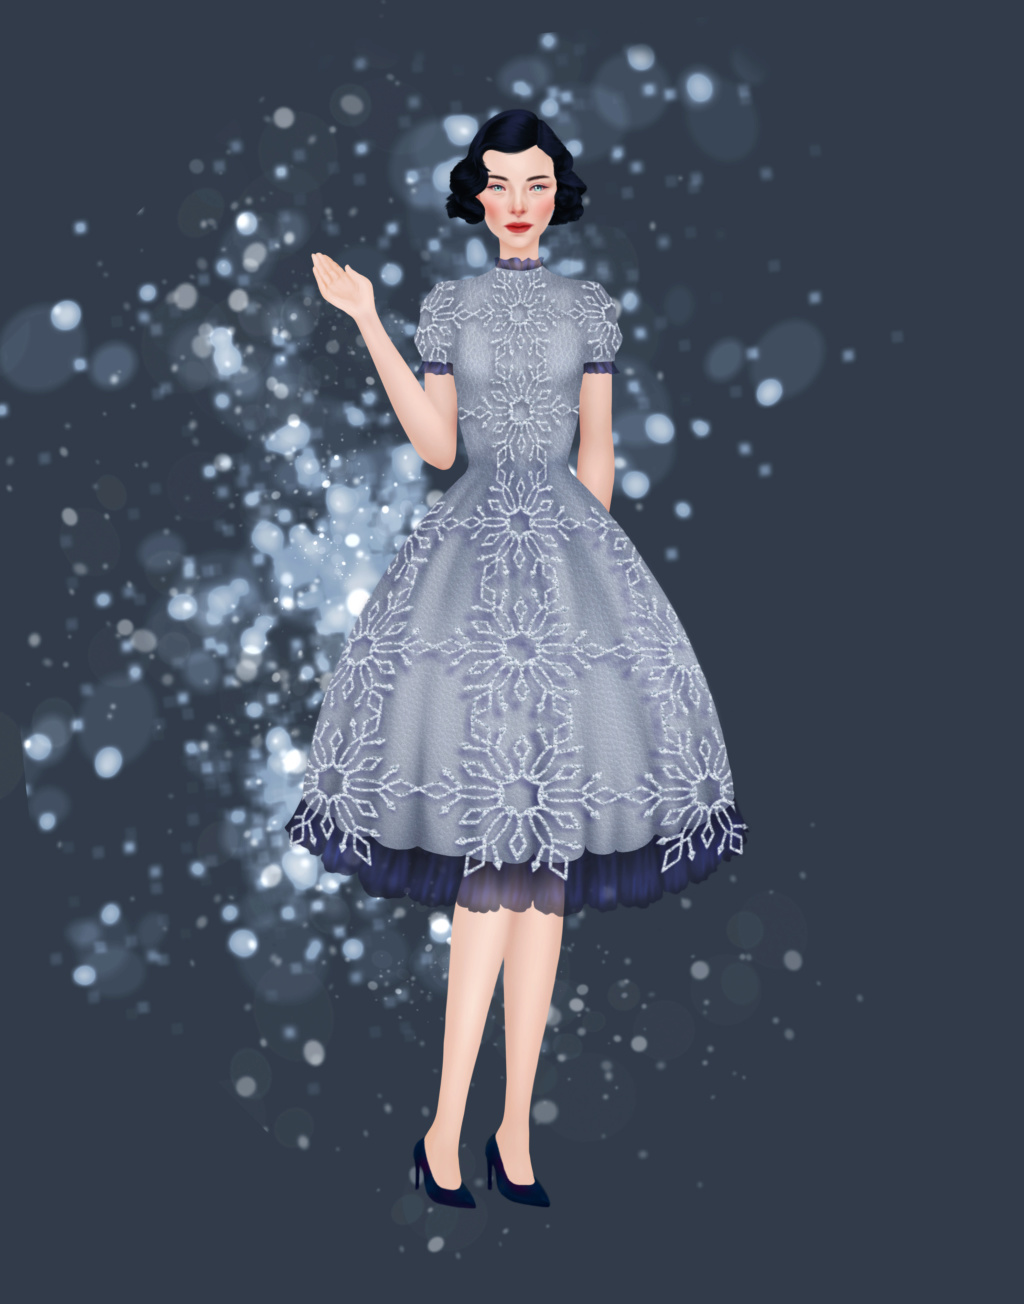 Leandra's Weekly Design Challenge: #13 Snowflakes Winter11